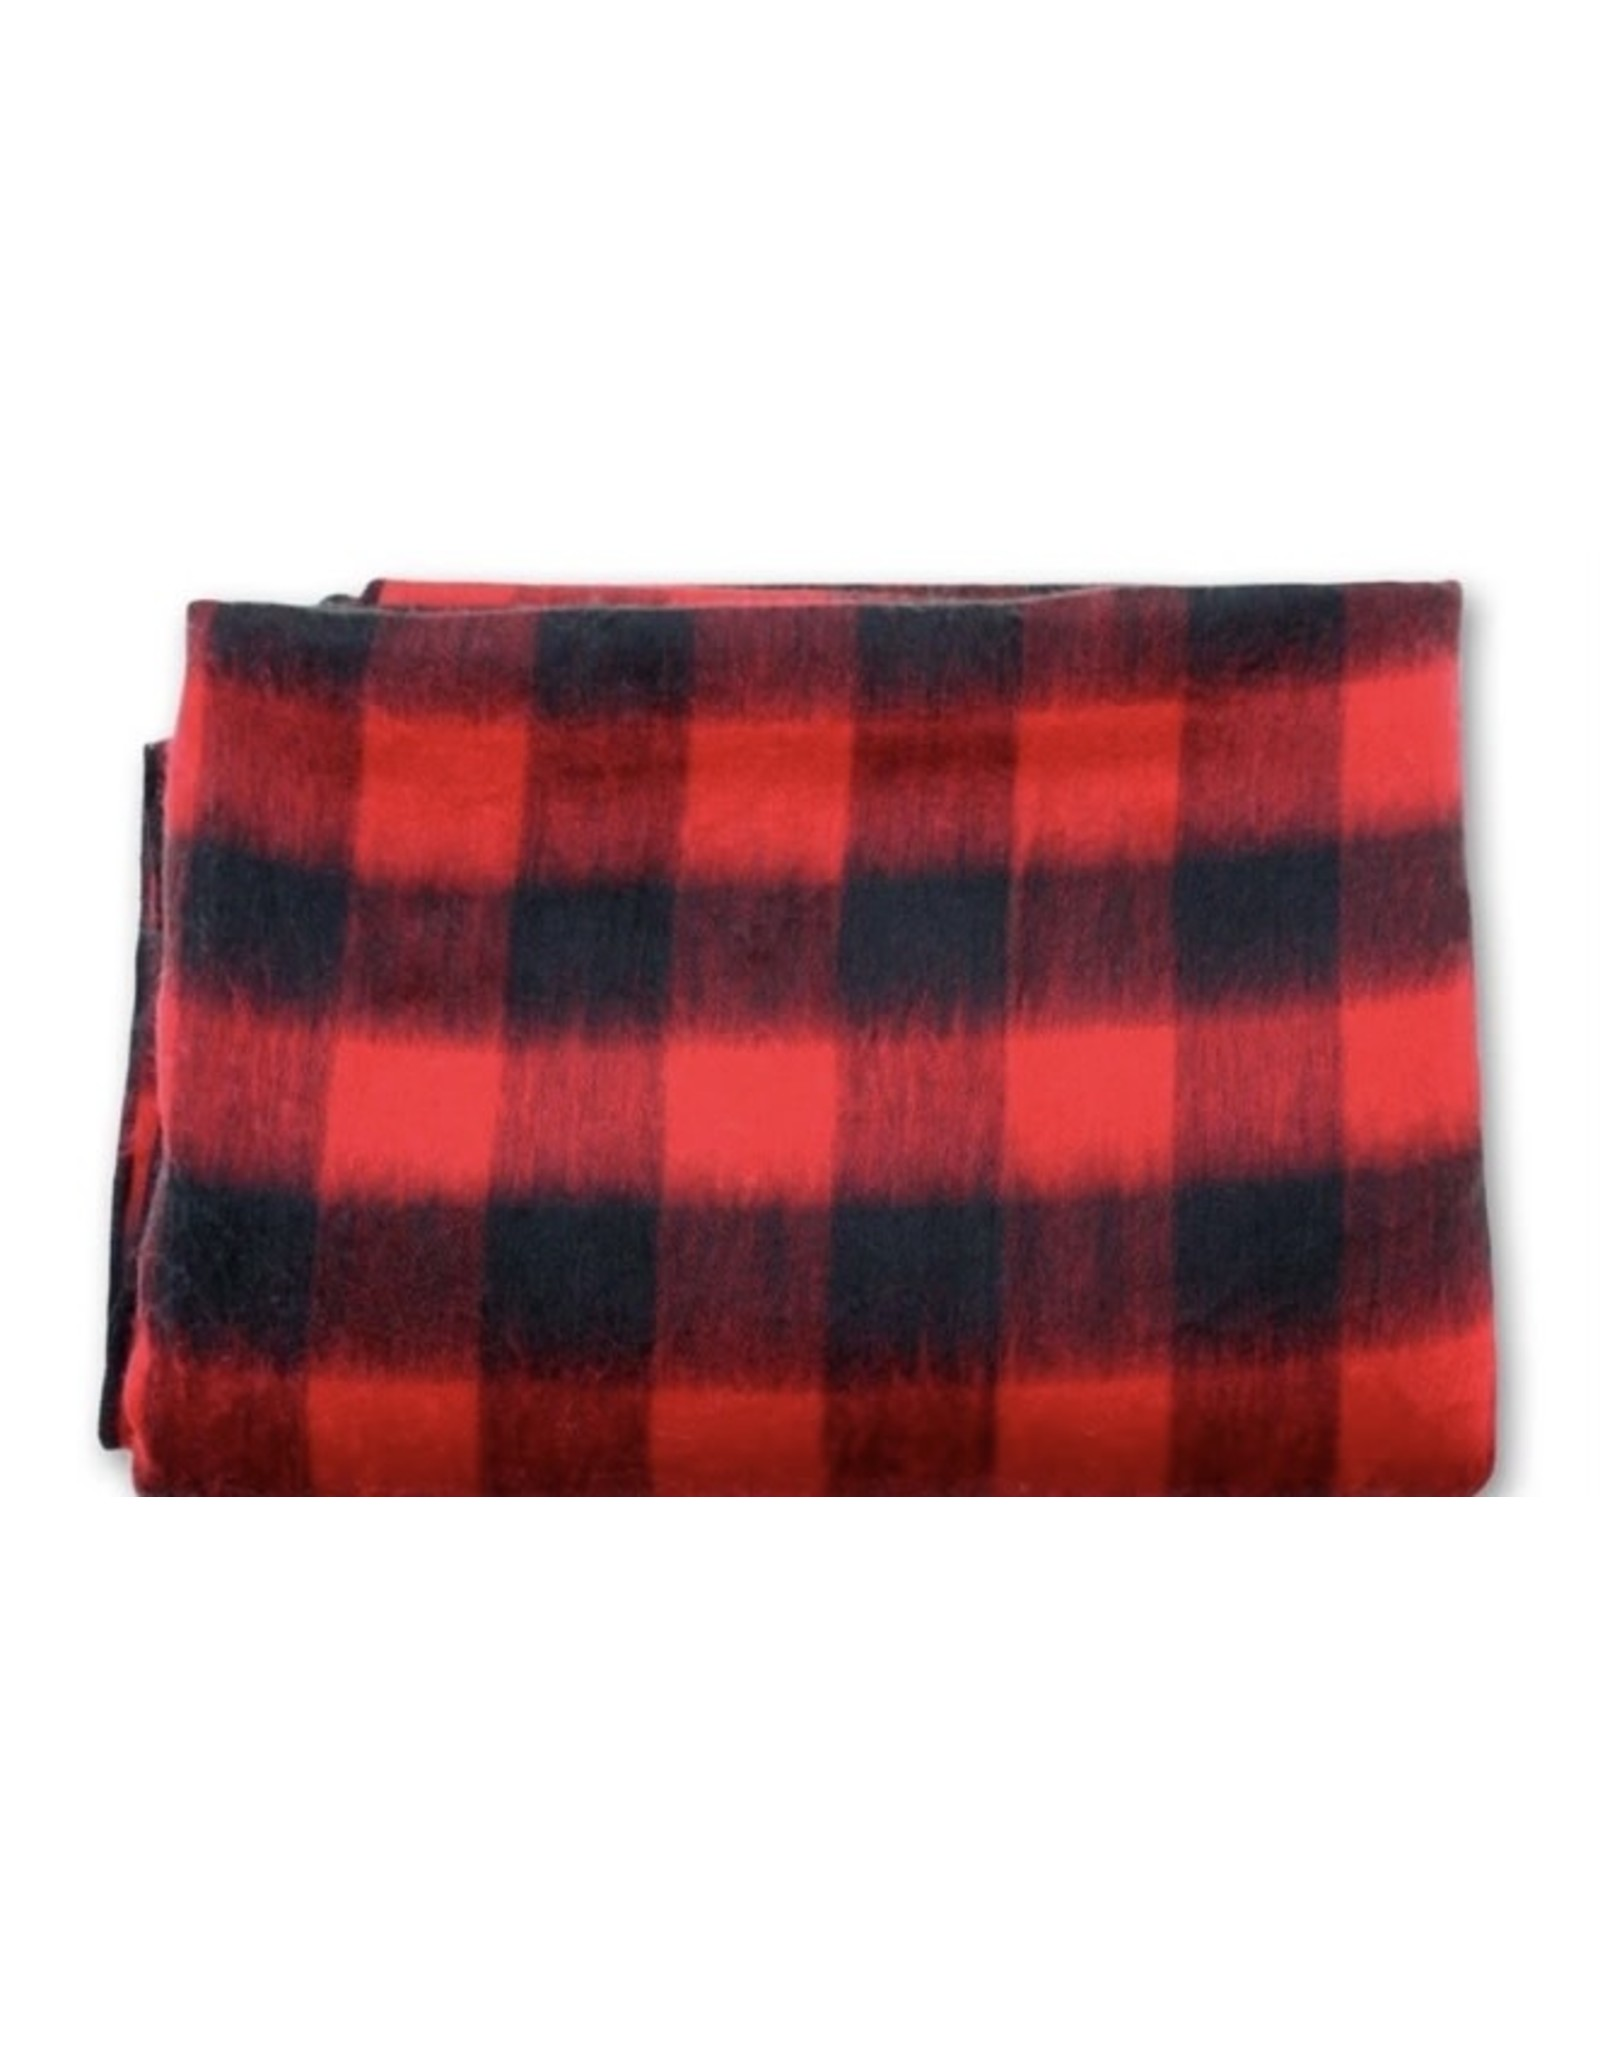 "70"" x 94"" Buffalo Plaid Alpaca Bed Blanket"